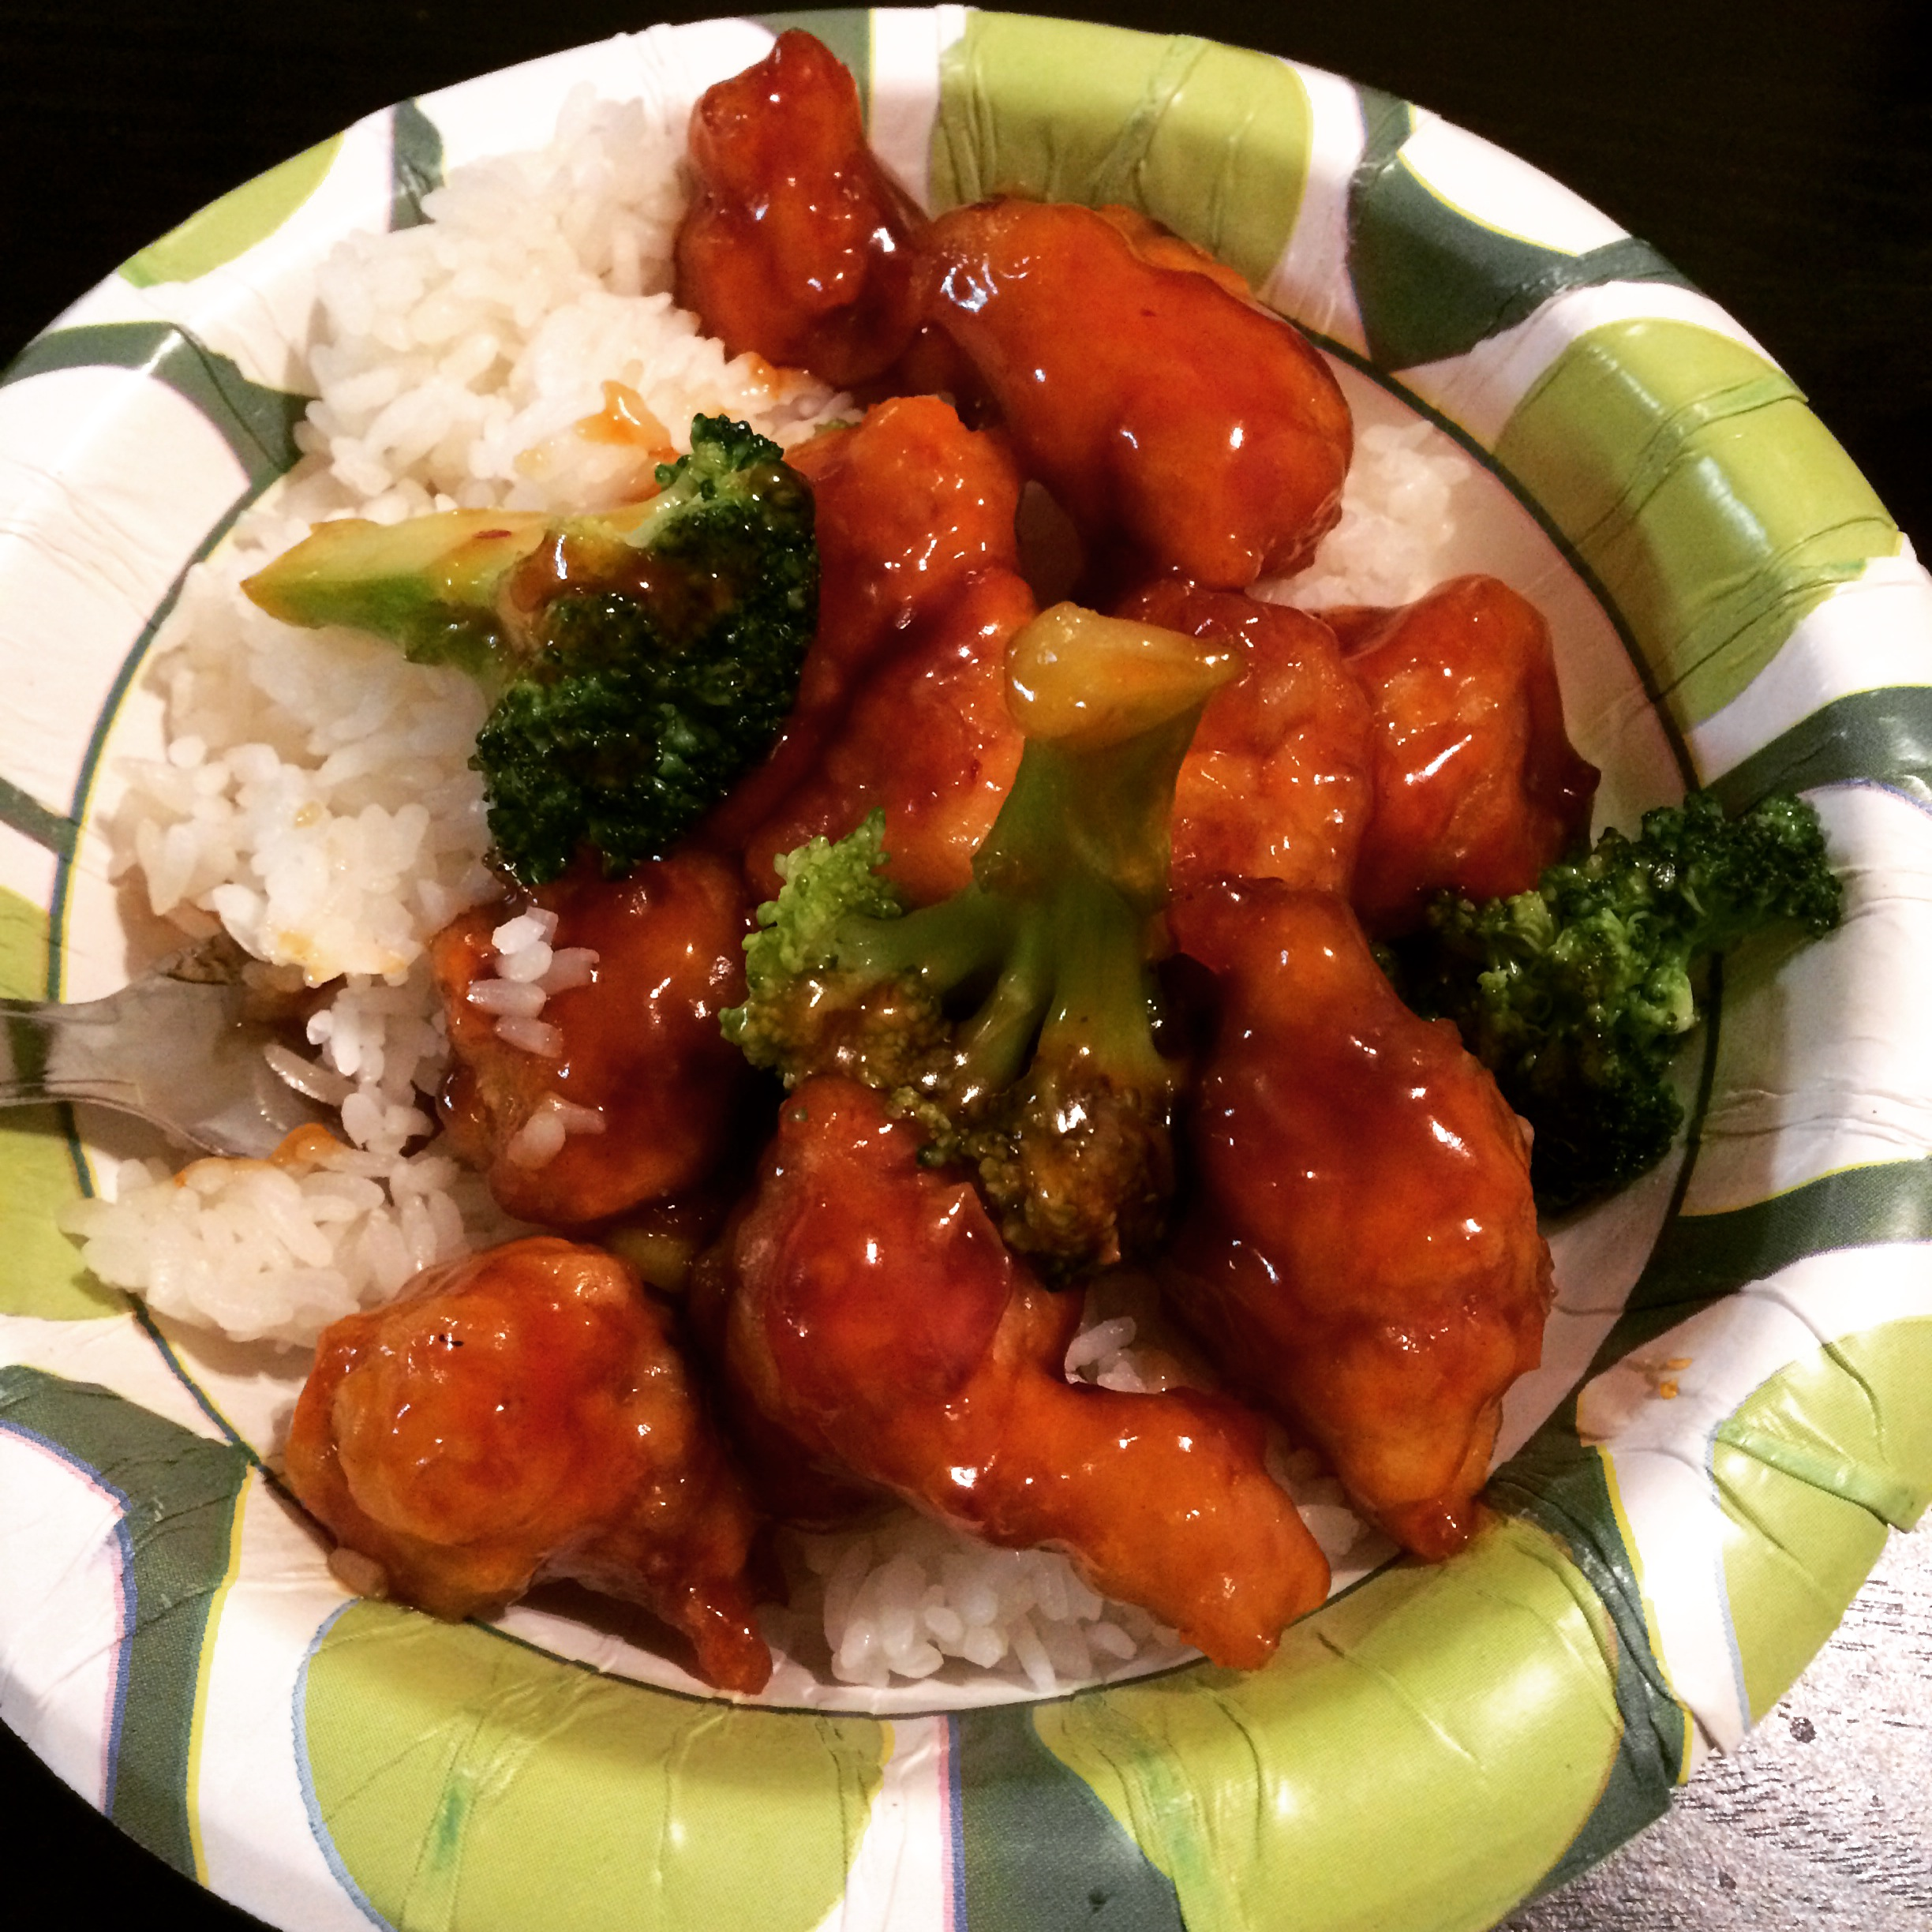 This was the bowl I fixed myself for dinner on Friday night. I will go to China Garden again.